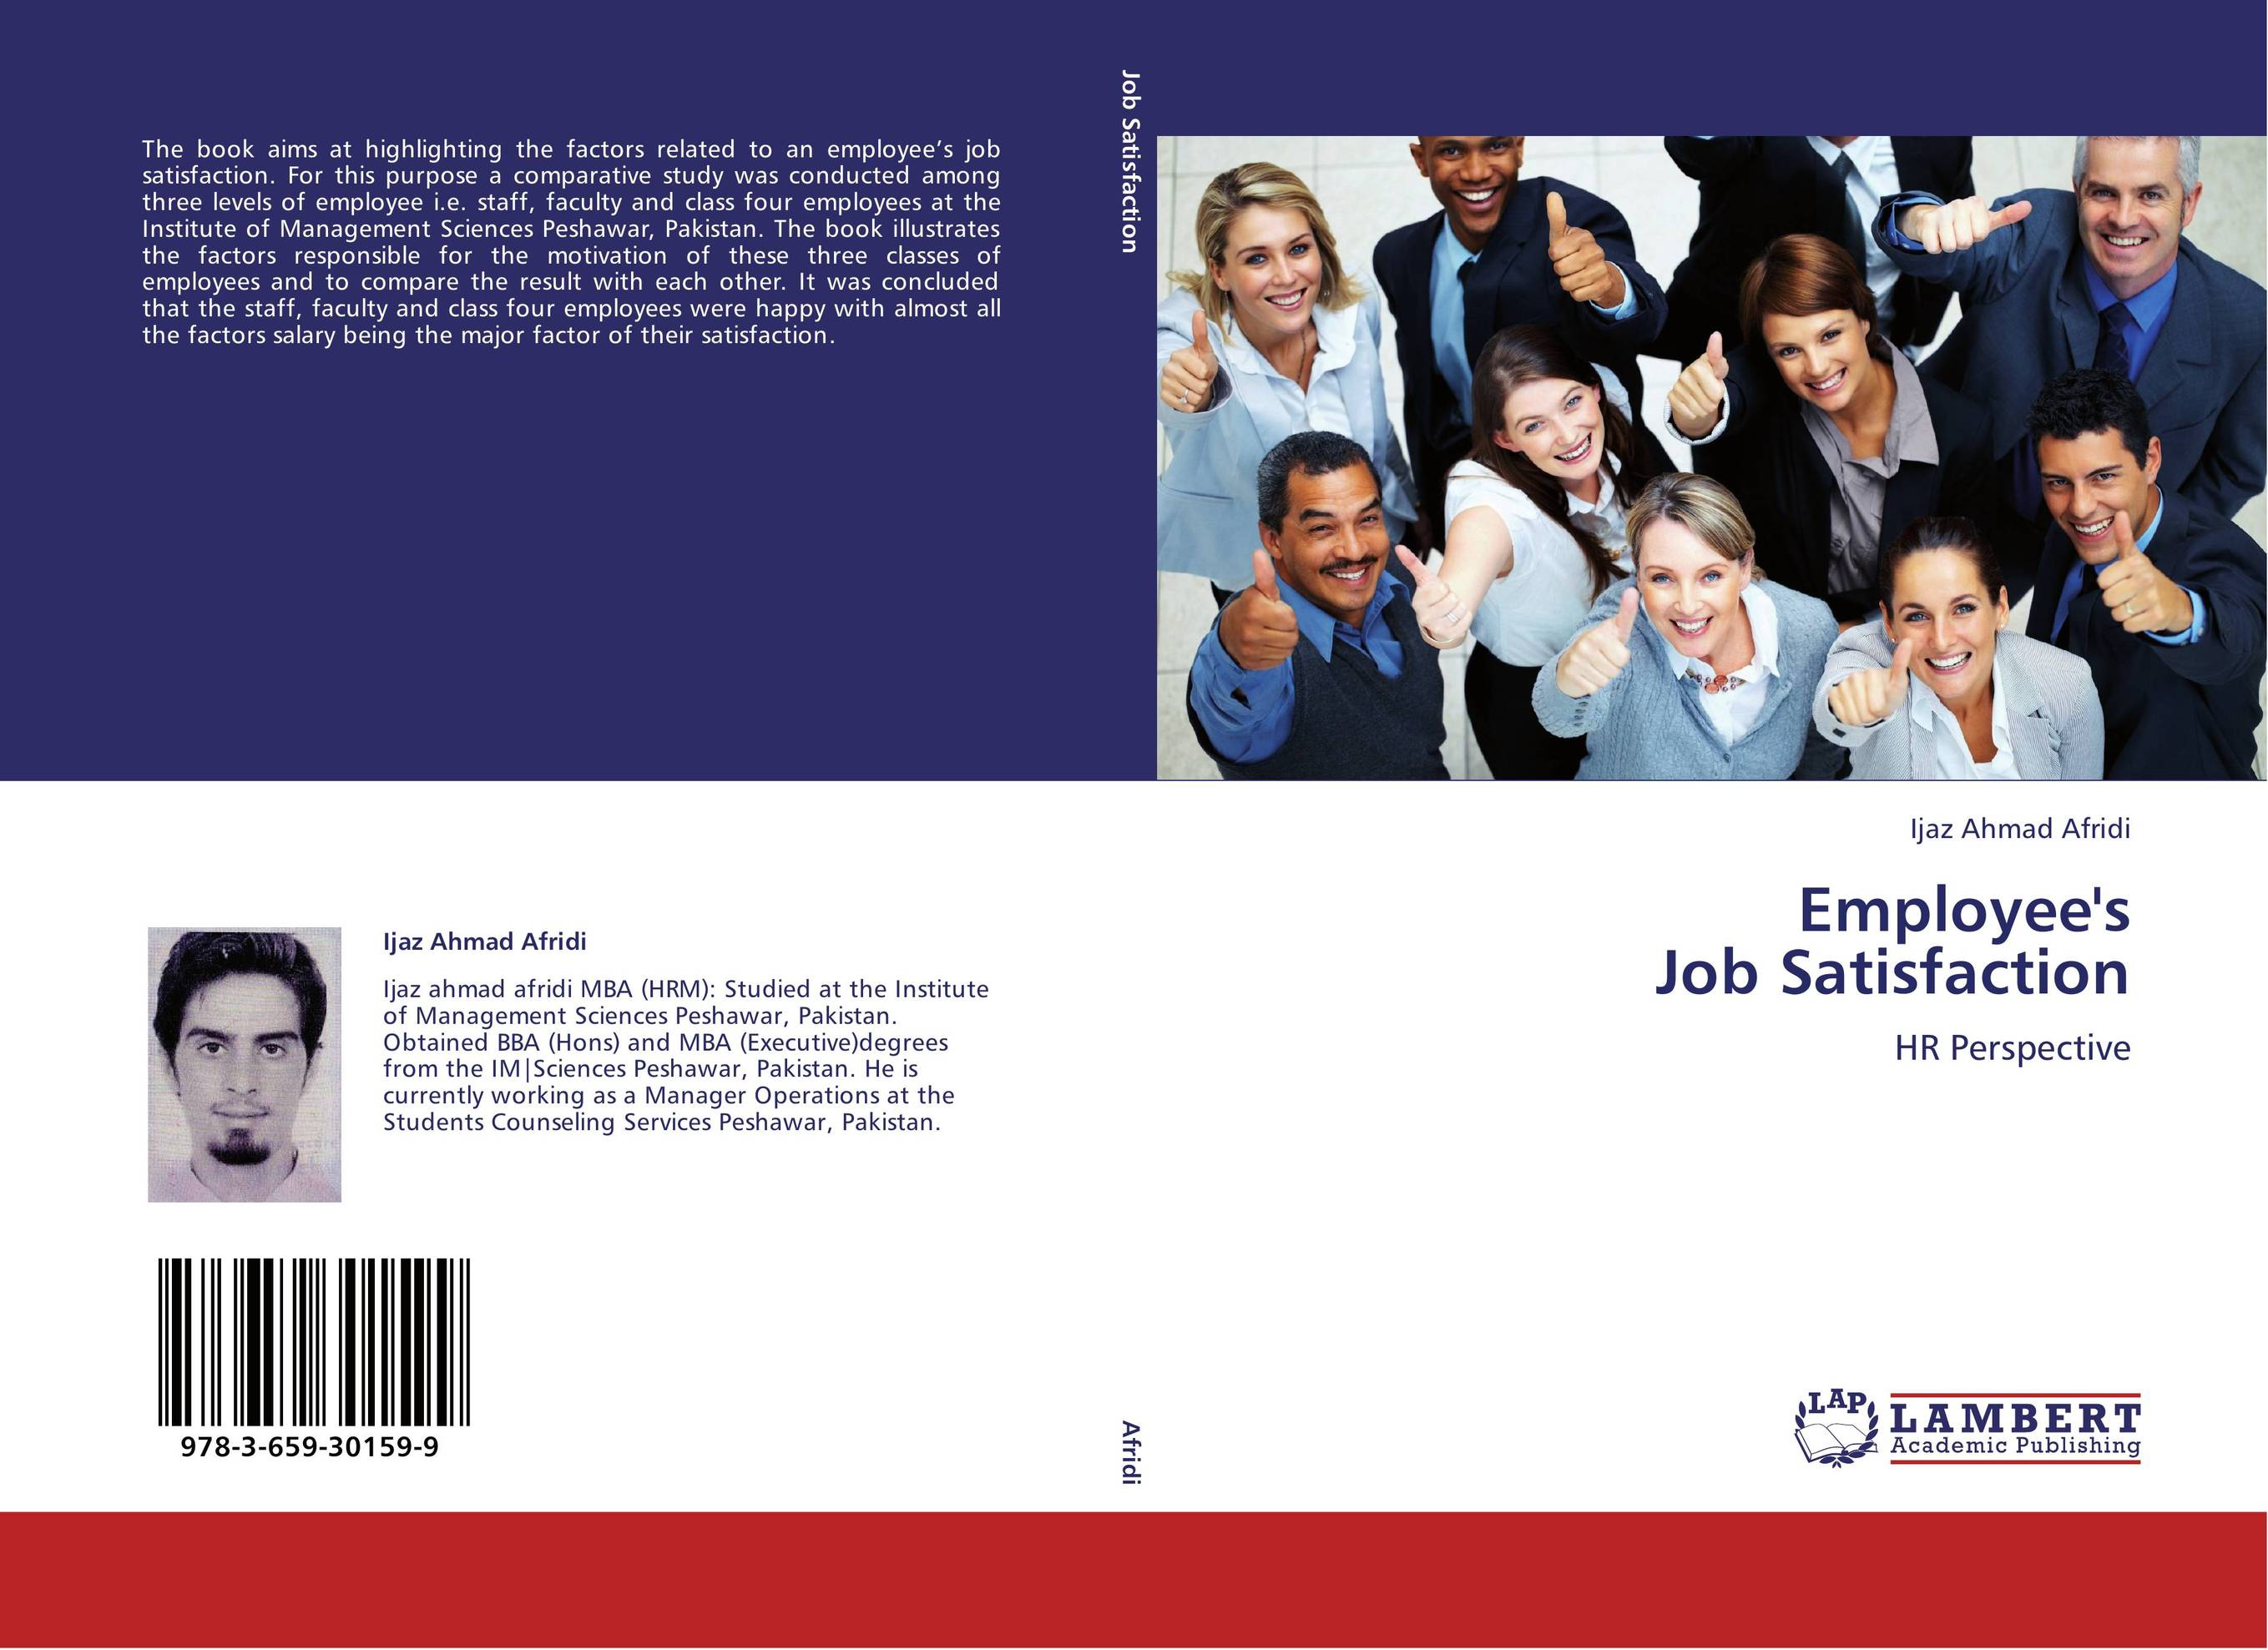 hr practicies and job satisfation of Whether hrm practices have a different impact on the job satisfaction of union members as opposed to non-union members there is a longstanding interest by economists in the role played by pay and reward.